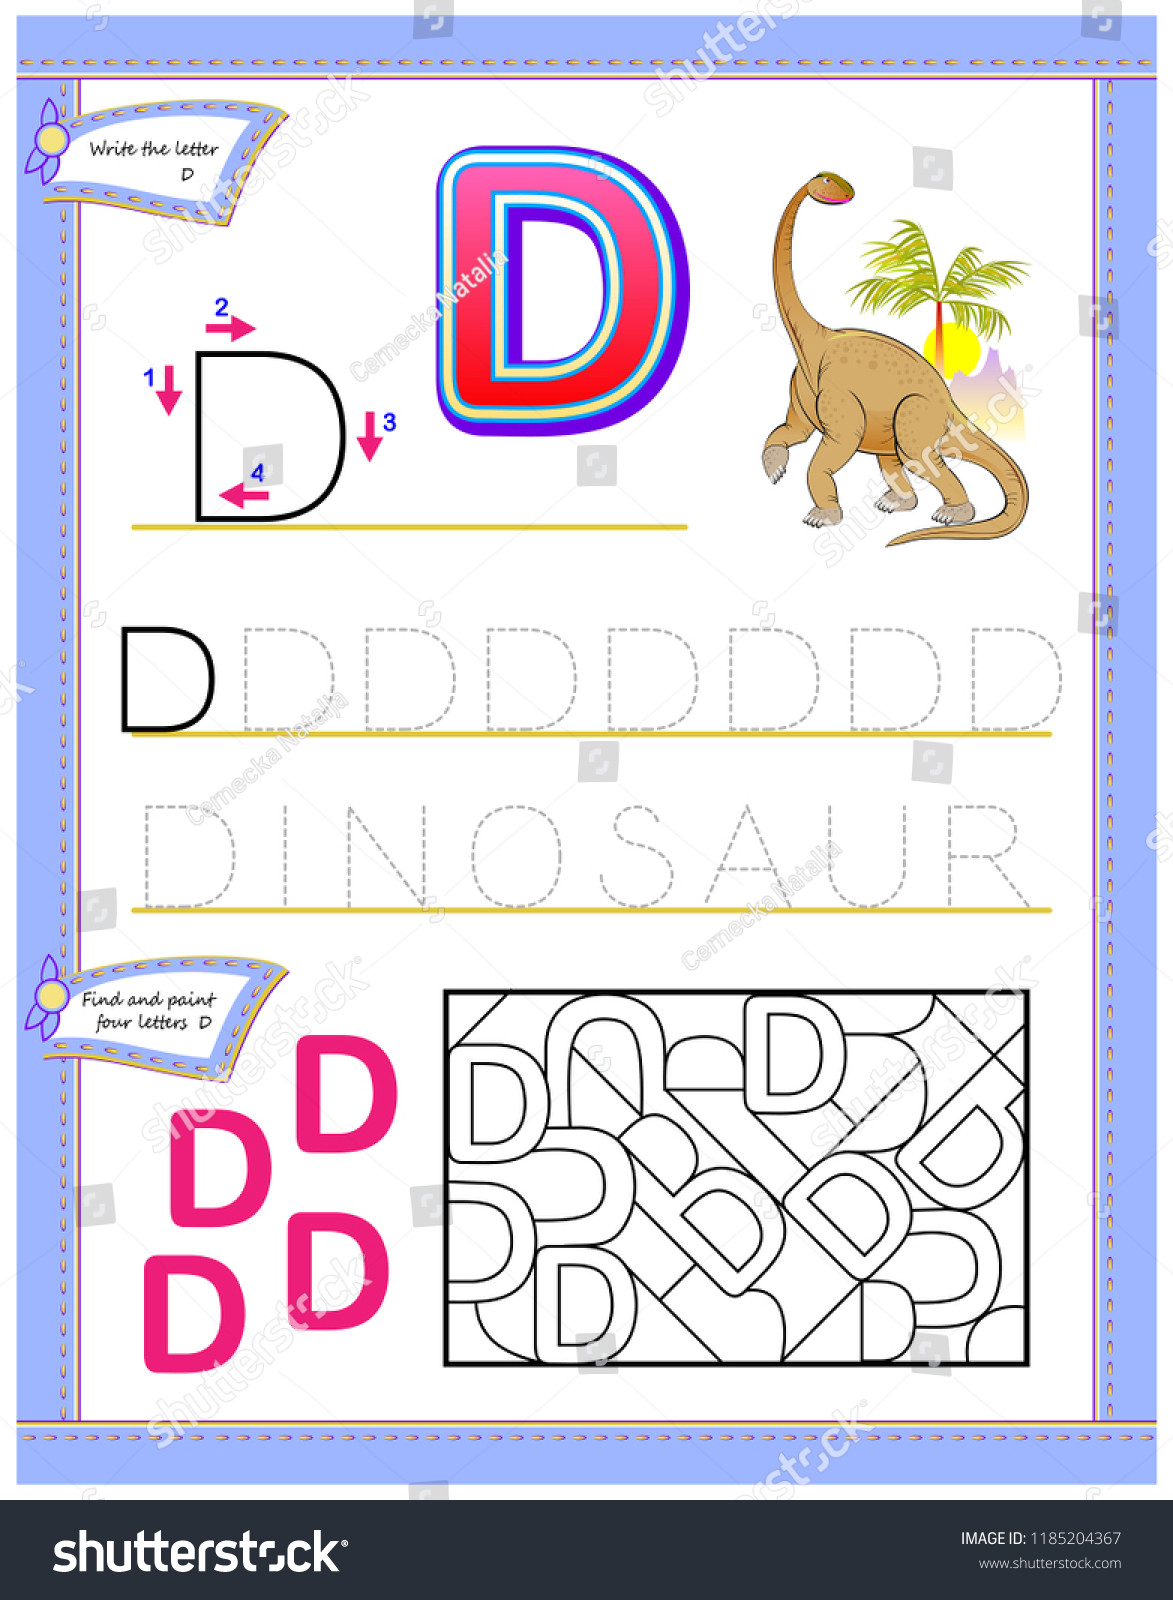 Letter D Worksheet Preschool Worksheet Kids Letter D Study English Stock Vector Royalty